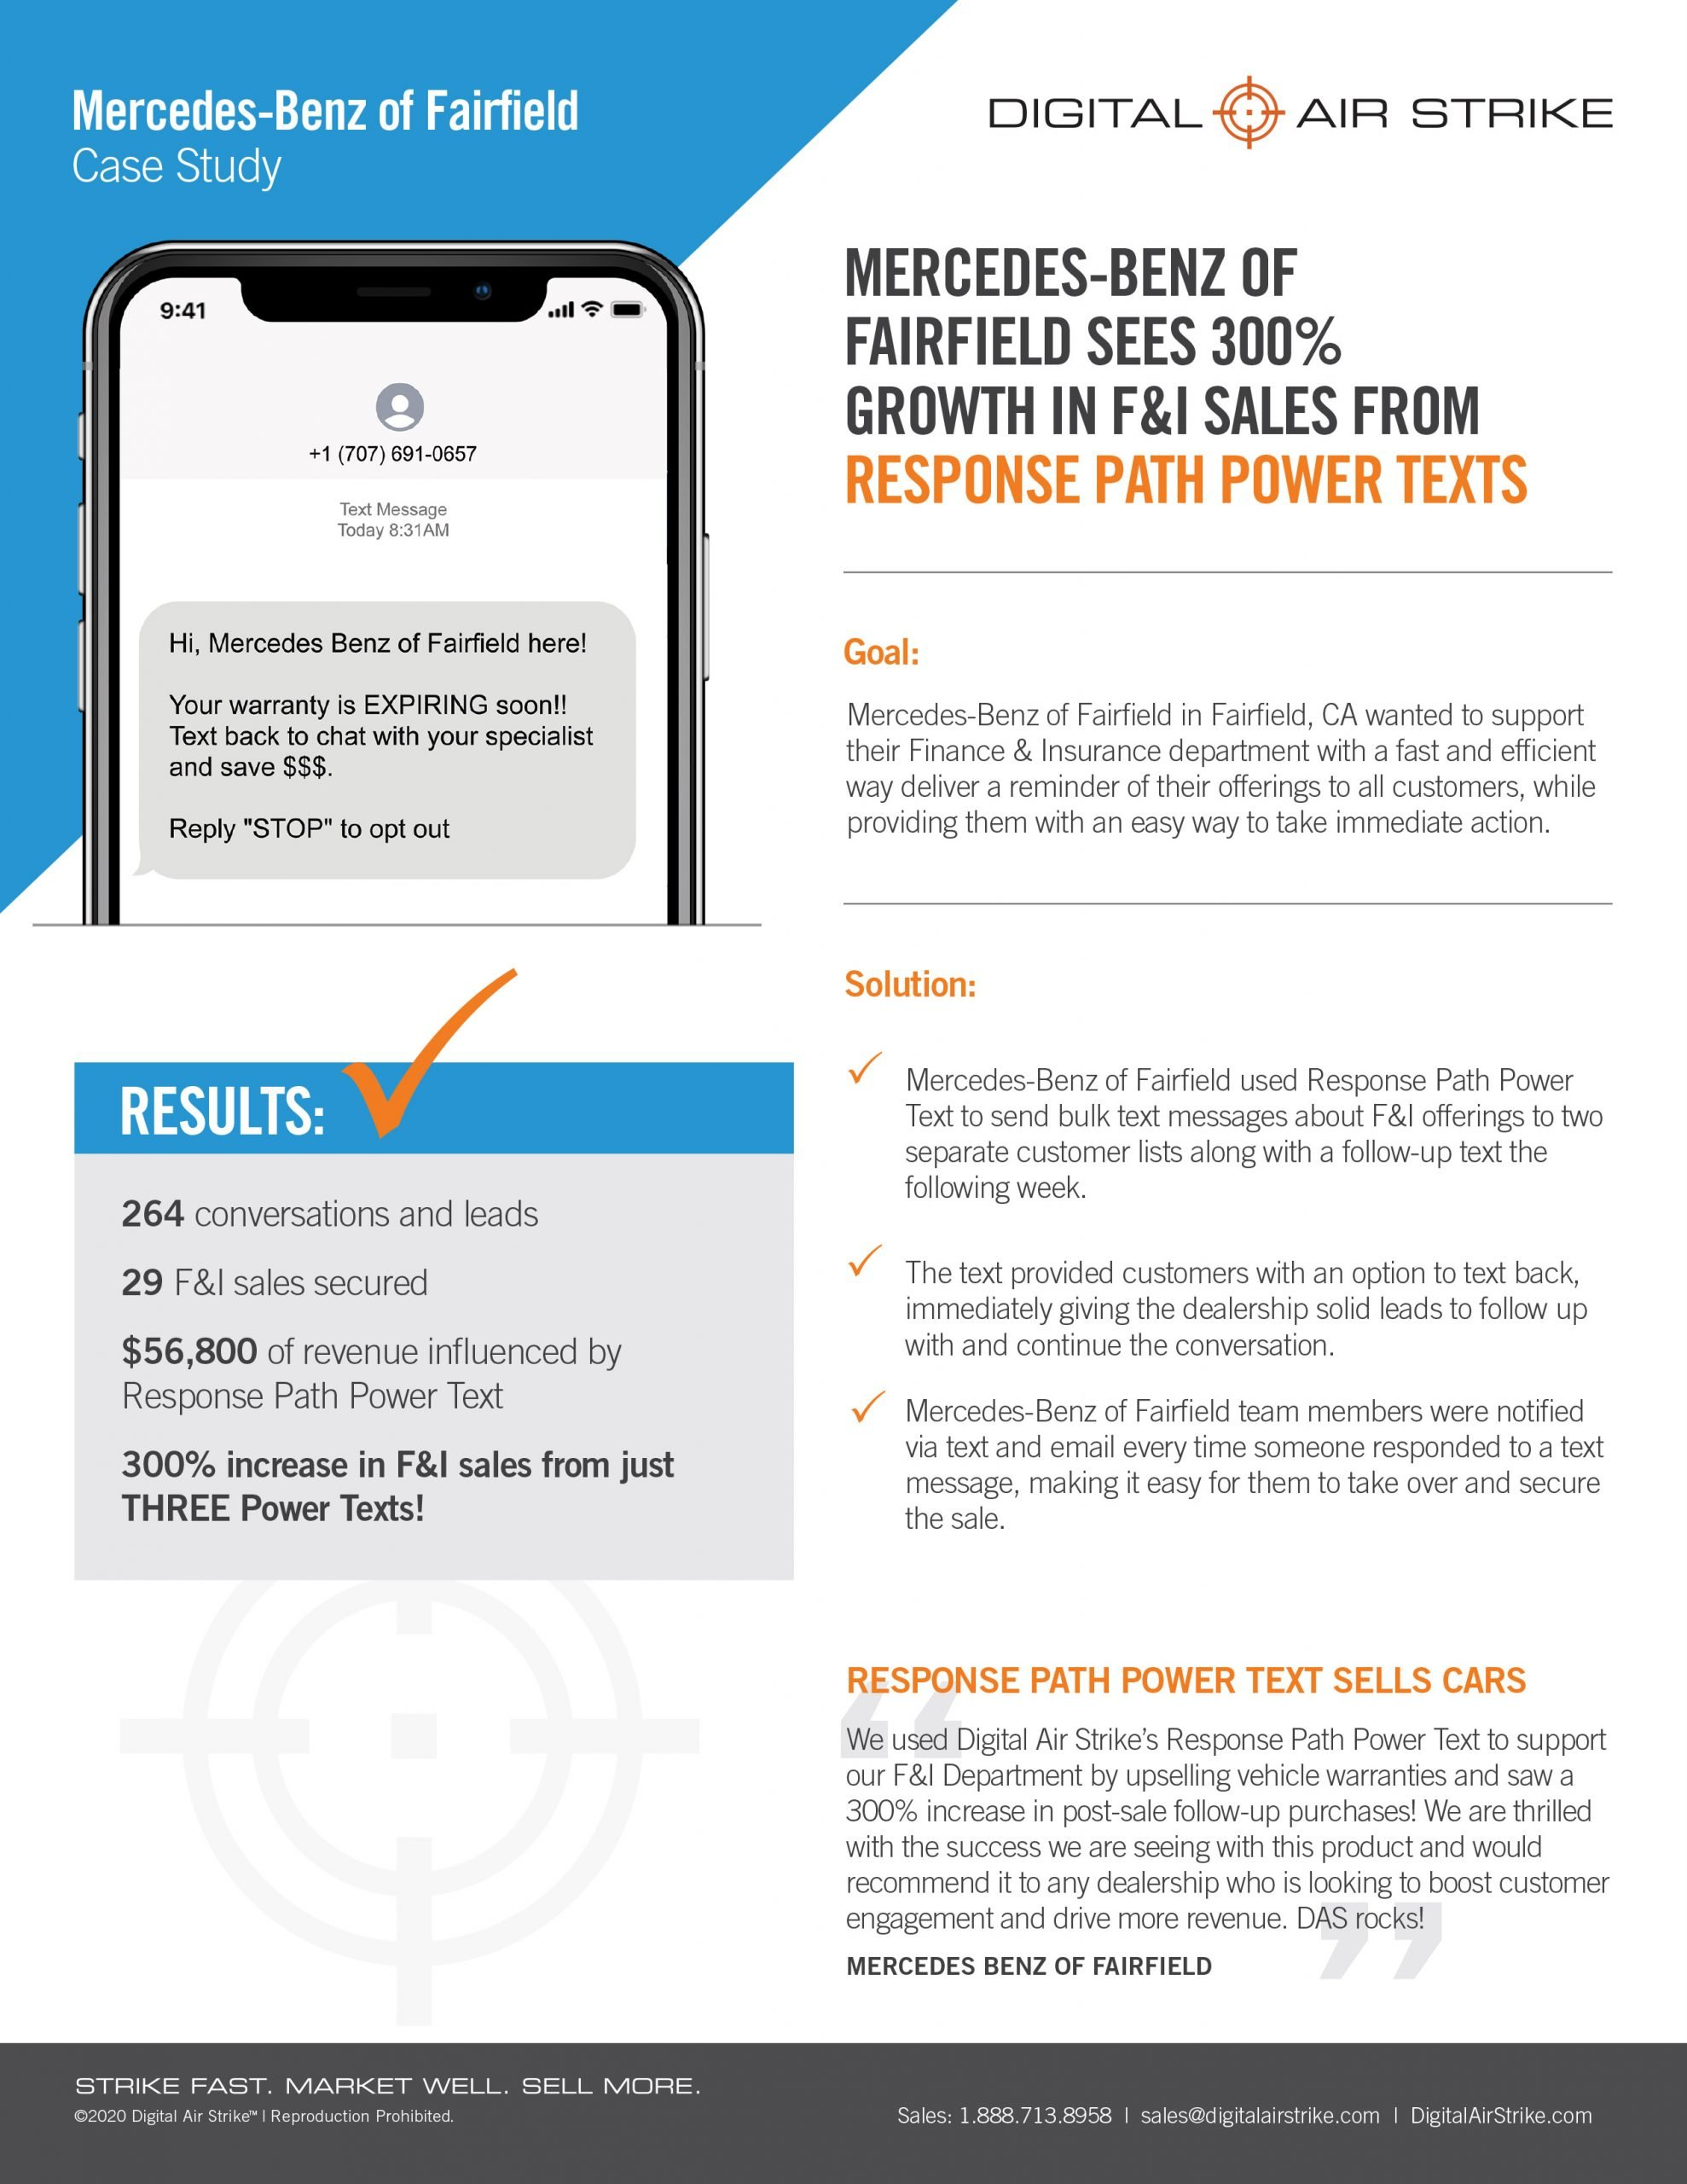 AI-Powered Bulk SMS Text Messages Deliver 300 Percent Finance & Insurance Sale Growth for Dealership – Digital Air Strike